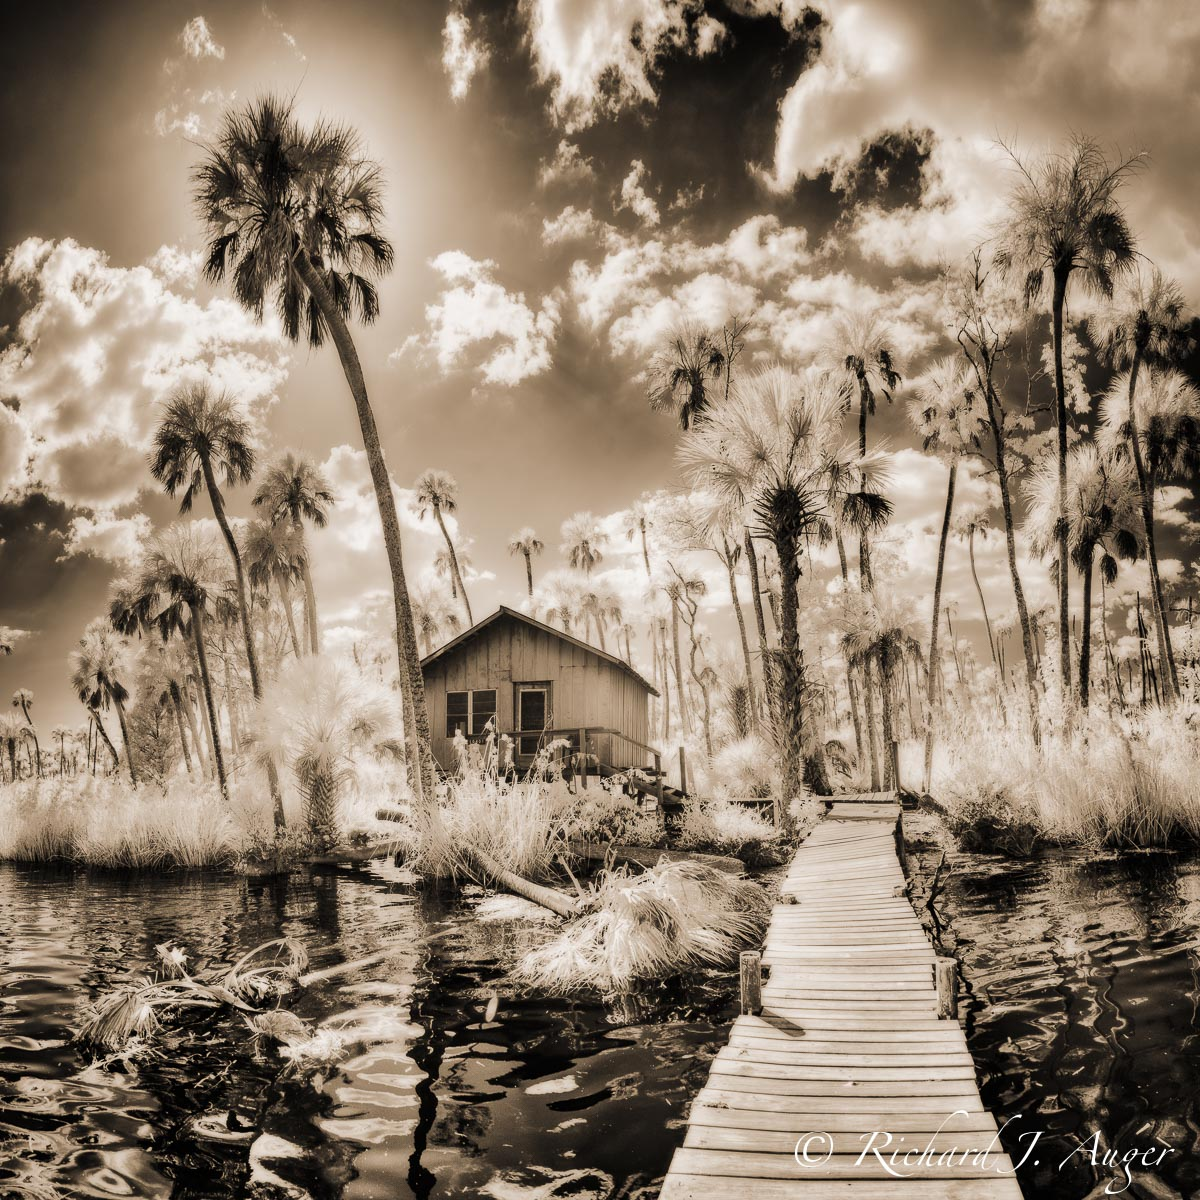 Chassahowitzka River, Florida, Shack, Walkway, Palm Trees, Water, Coastal, Swamp, Kayaking, Landscape, Photographer, Infrared, Backlit